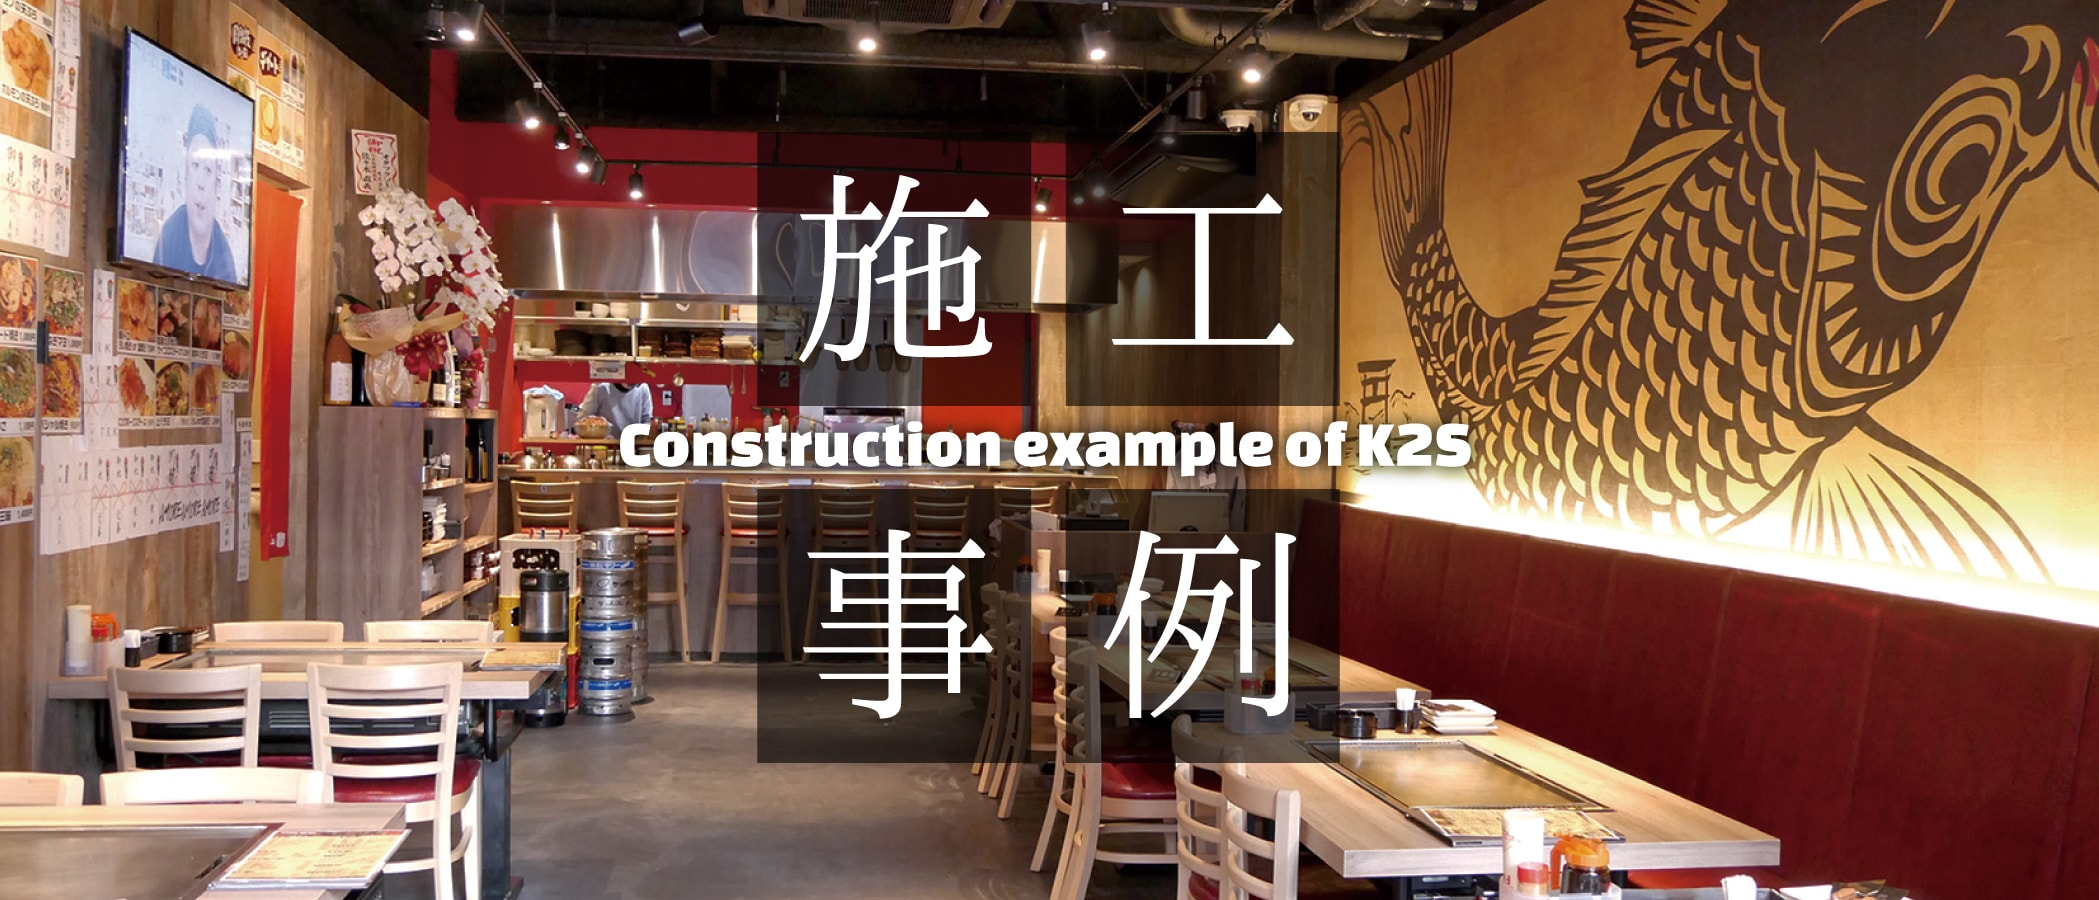 施工事例 -Construction example of K2S-